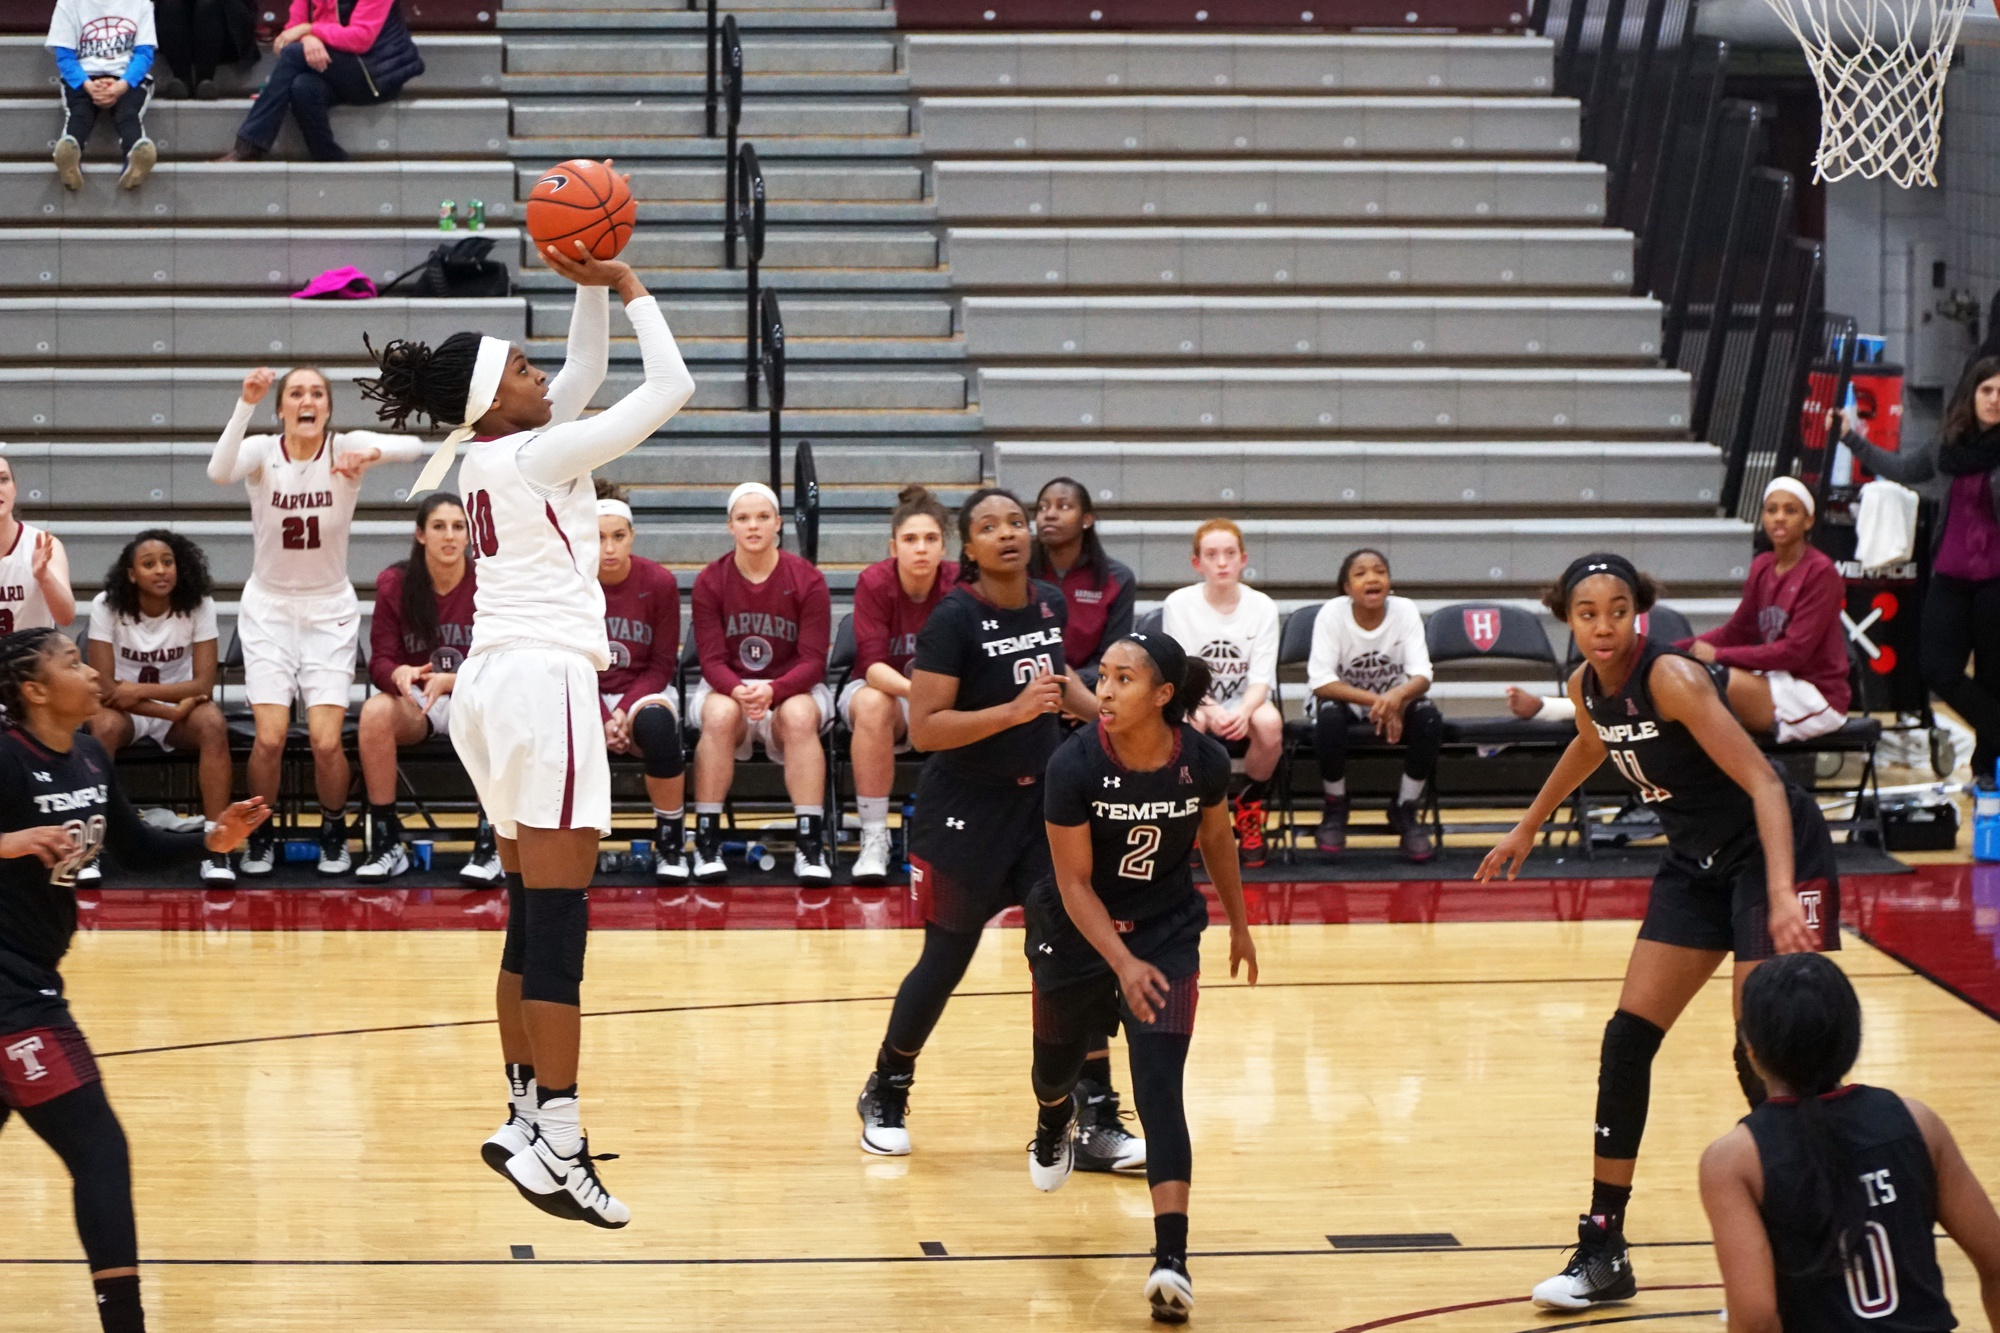 Co-captain Destiny Nunley rises for a shot inside the paint. The senior provides a strong inside presence for Harvard.